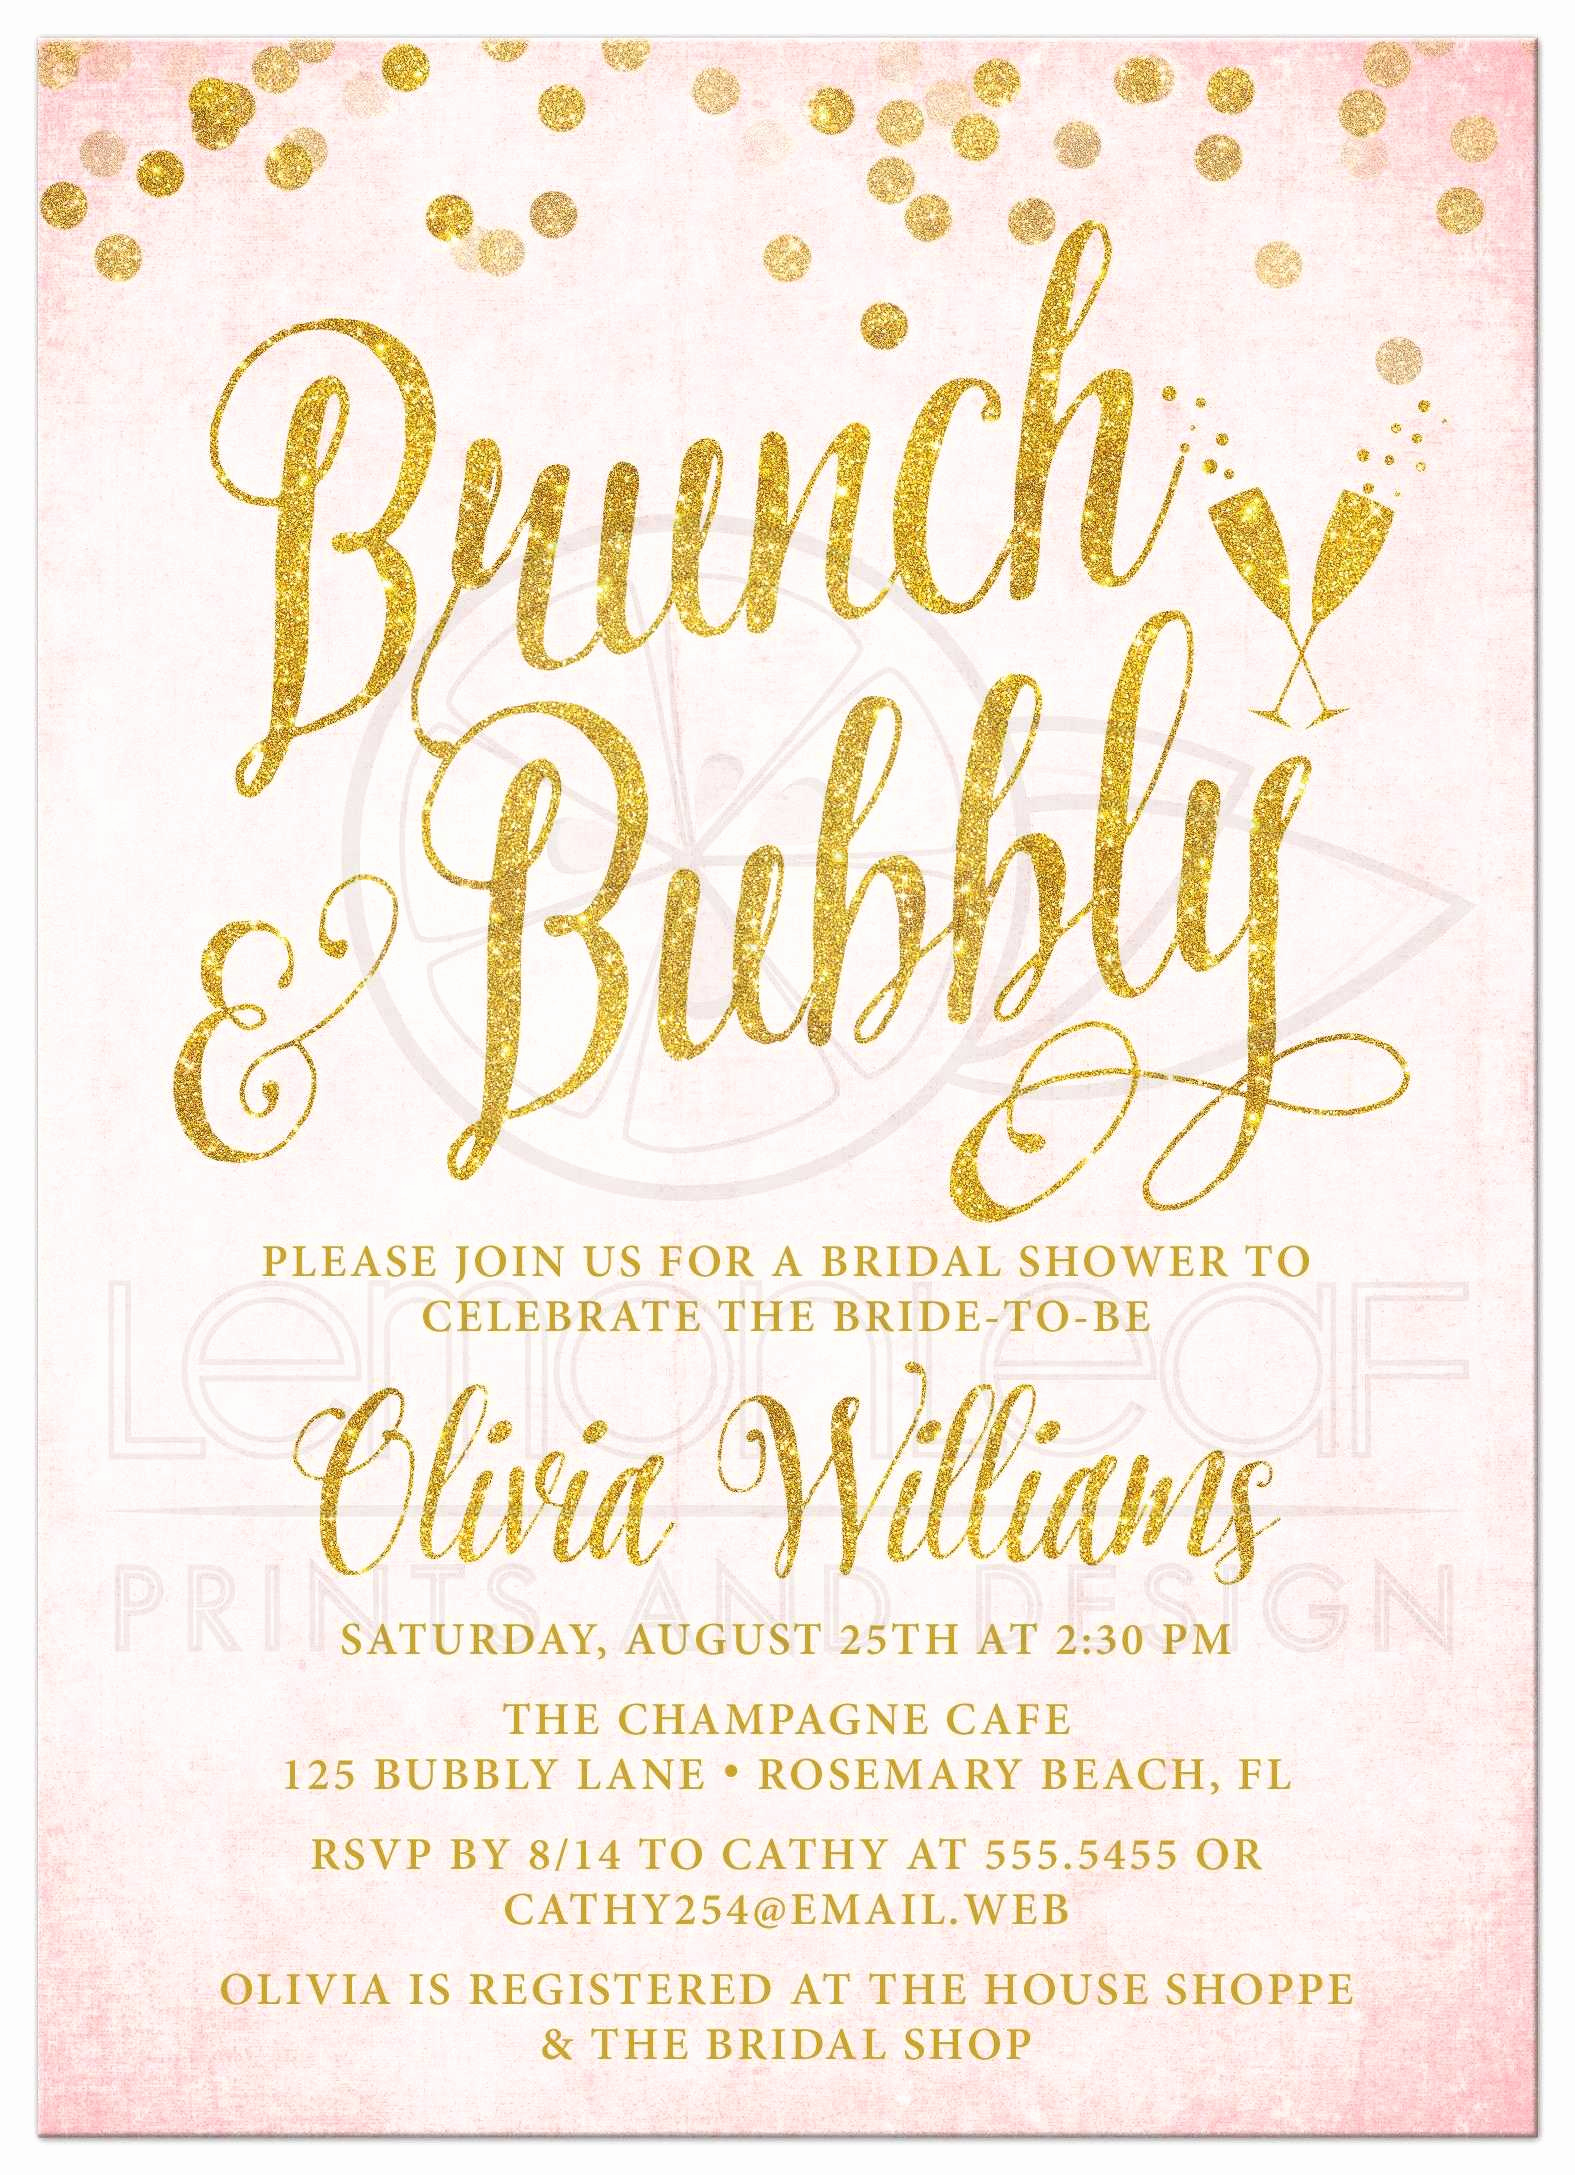 Bridal Shower Brunch Invitation Wording Awesome Pink & Gold Brunch & Bubbly Bridal Shower Invitations